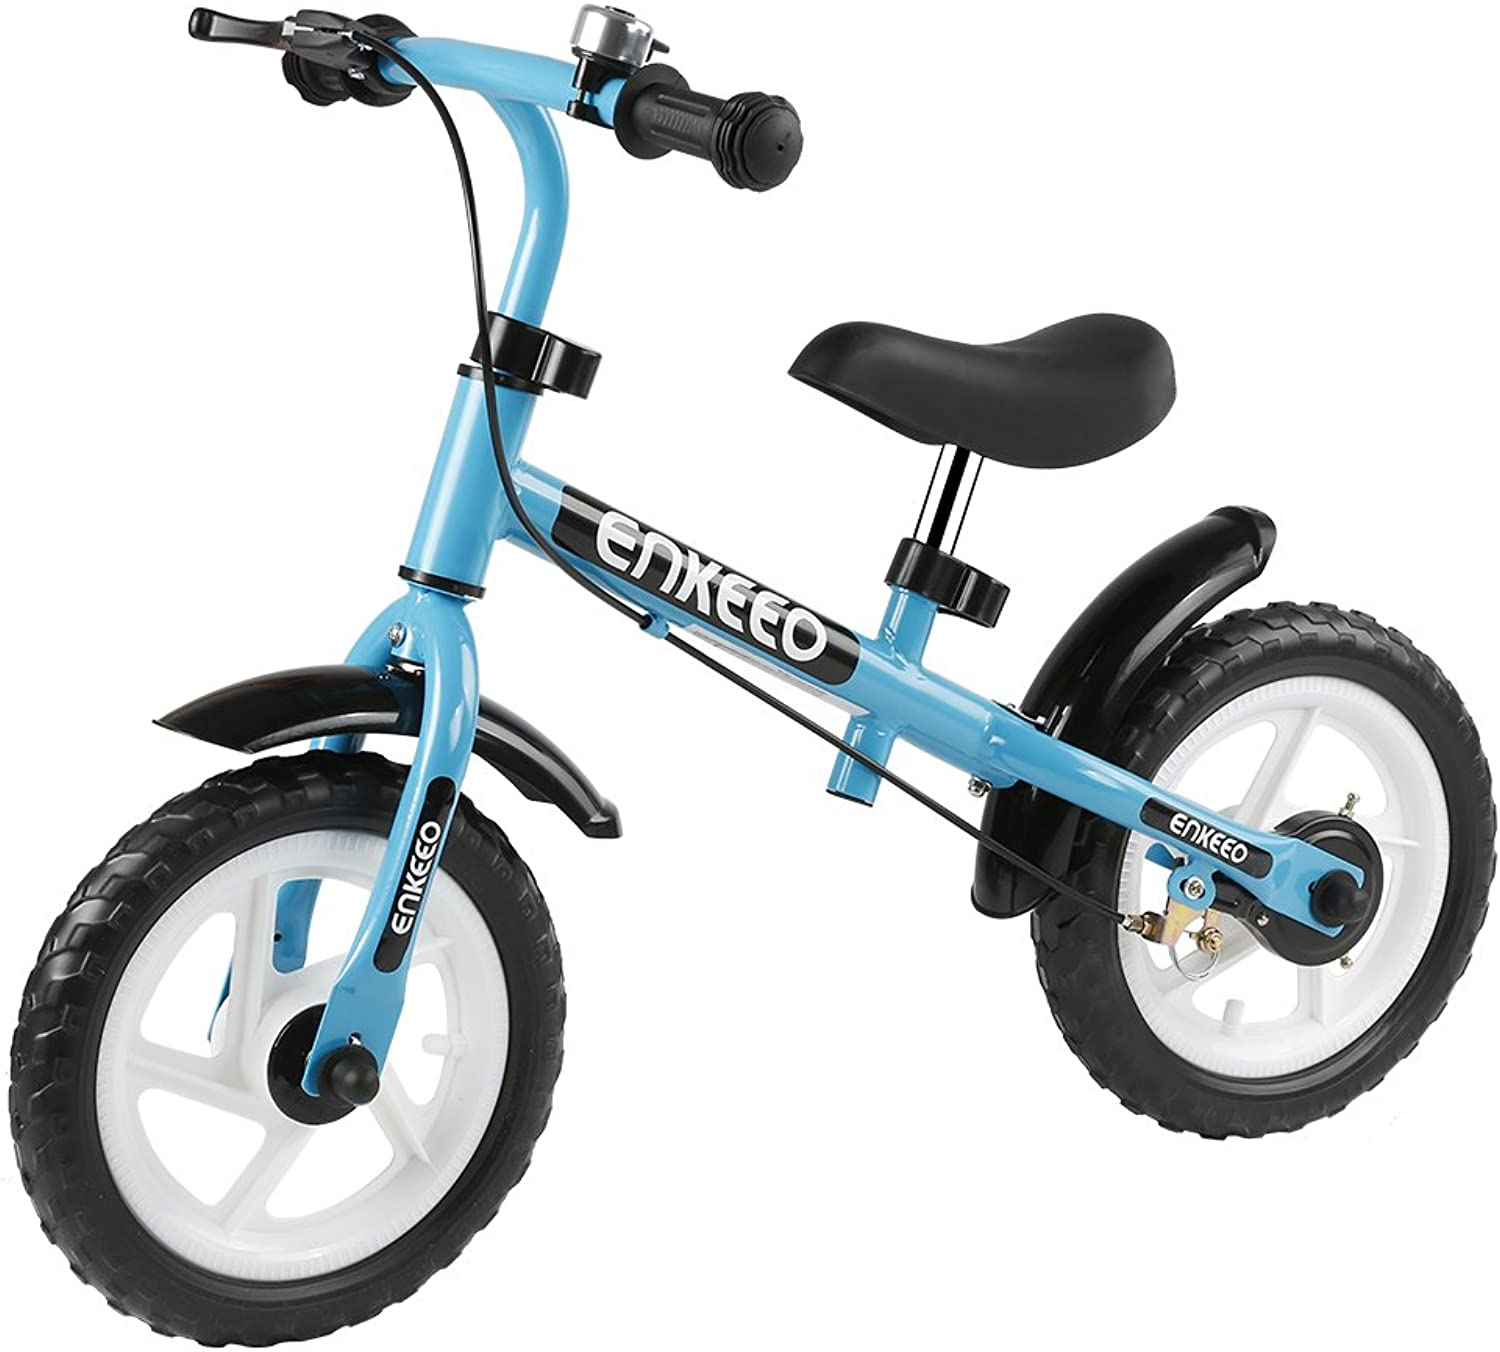 ENKEEO Balance Bike with No Pedal Adjustable Seat & Handlebar, Antirust Carbon Steel Frame, Rear hand Brake, Safe & Comfortable for 26 Year old Kids Toddler, 50kg Capacity (12 Inch,bluee)